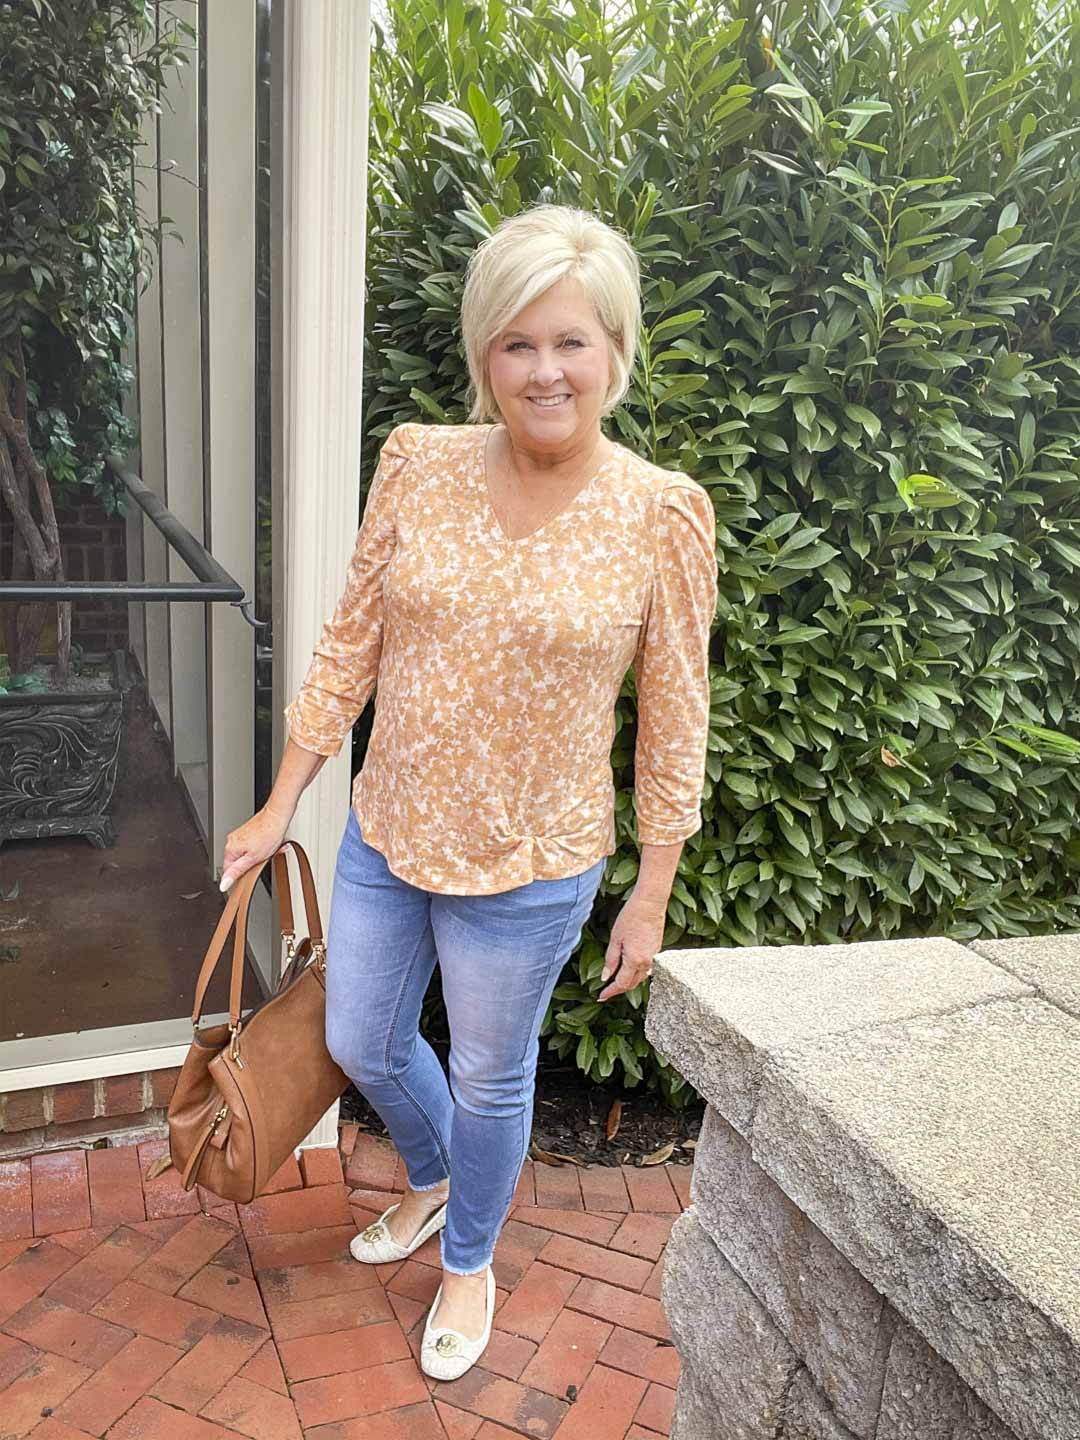 Over 40 Fashion Blogger, Tania Stephens, is wearing one of her puff sleeve tops with a light blue pair of jeans and carrying a brown handbag